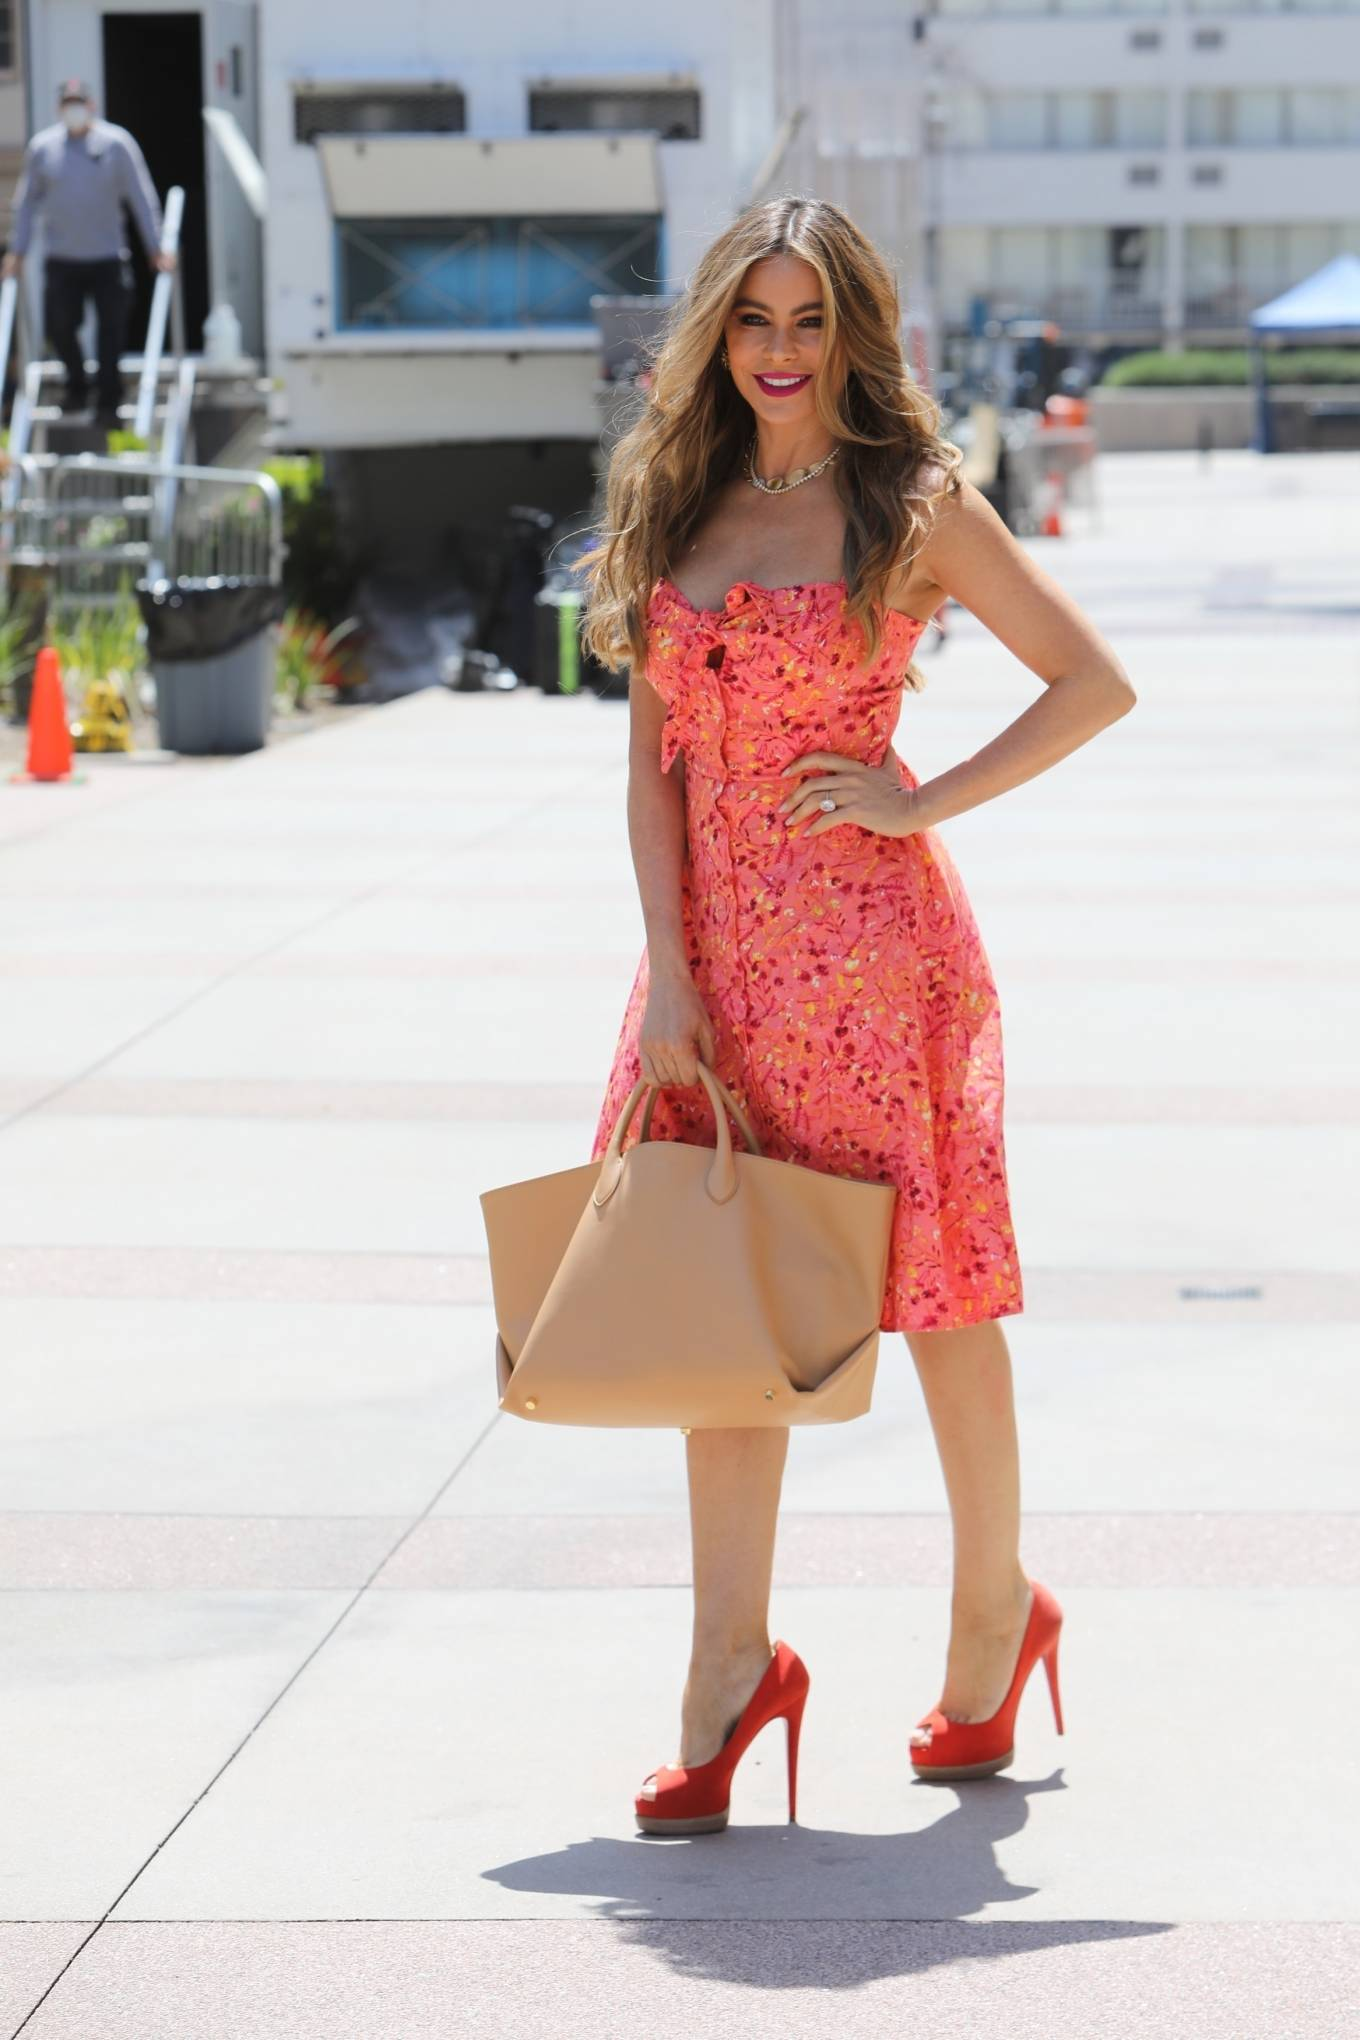 Sofia Vergara - Looks stunning while arriving to America Got Talent Taping in Los Angeles